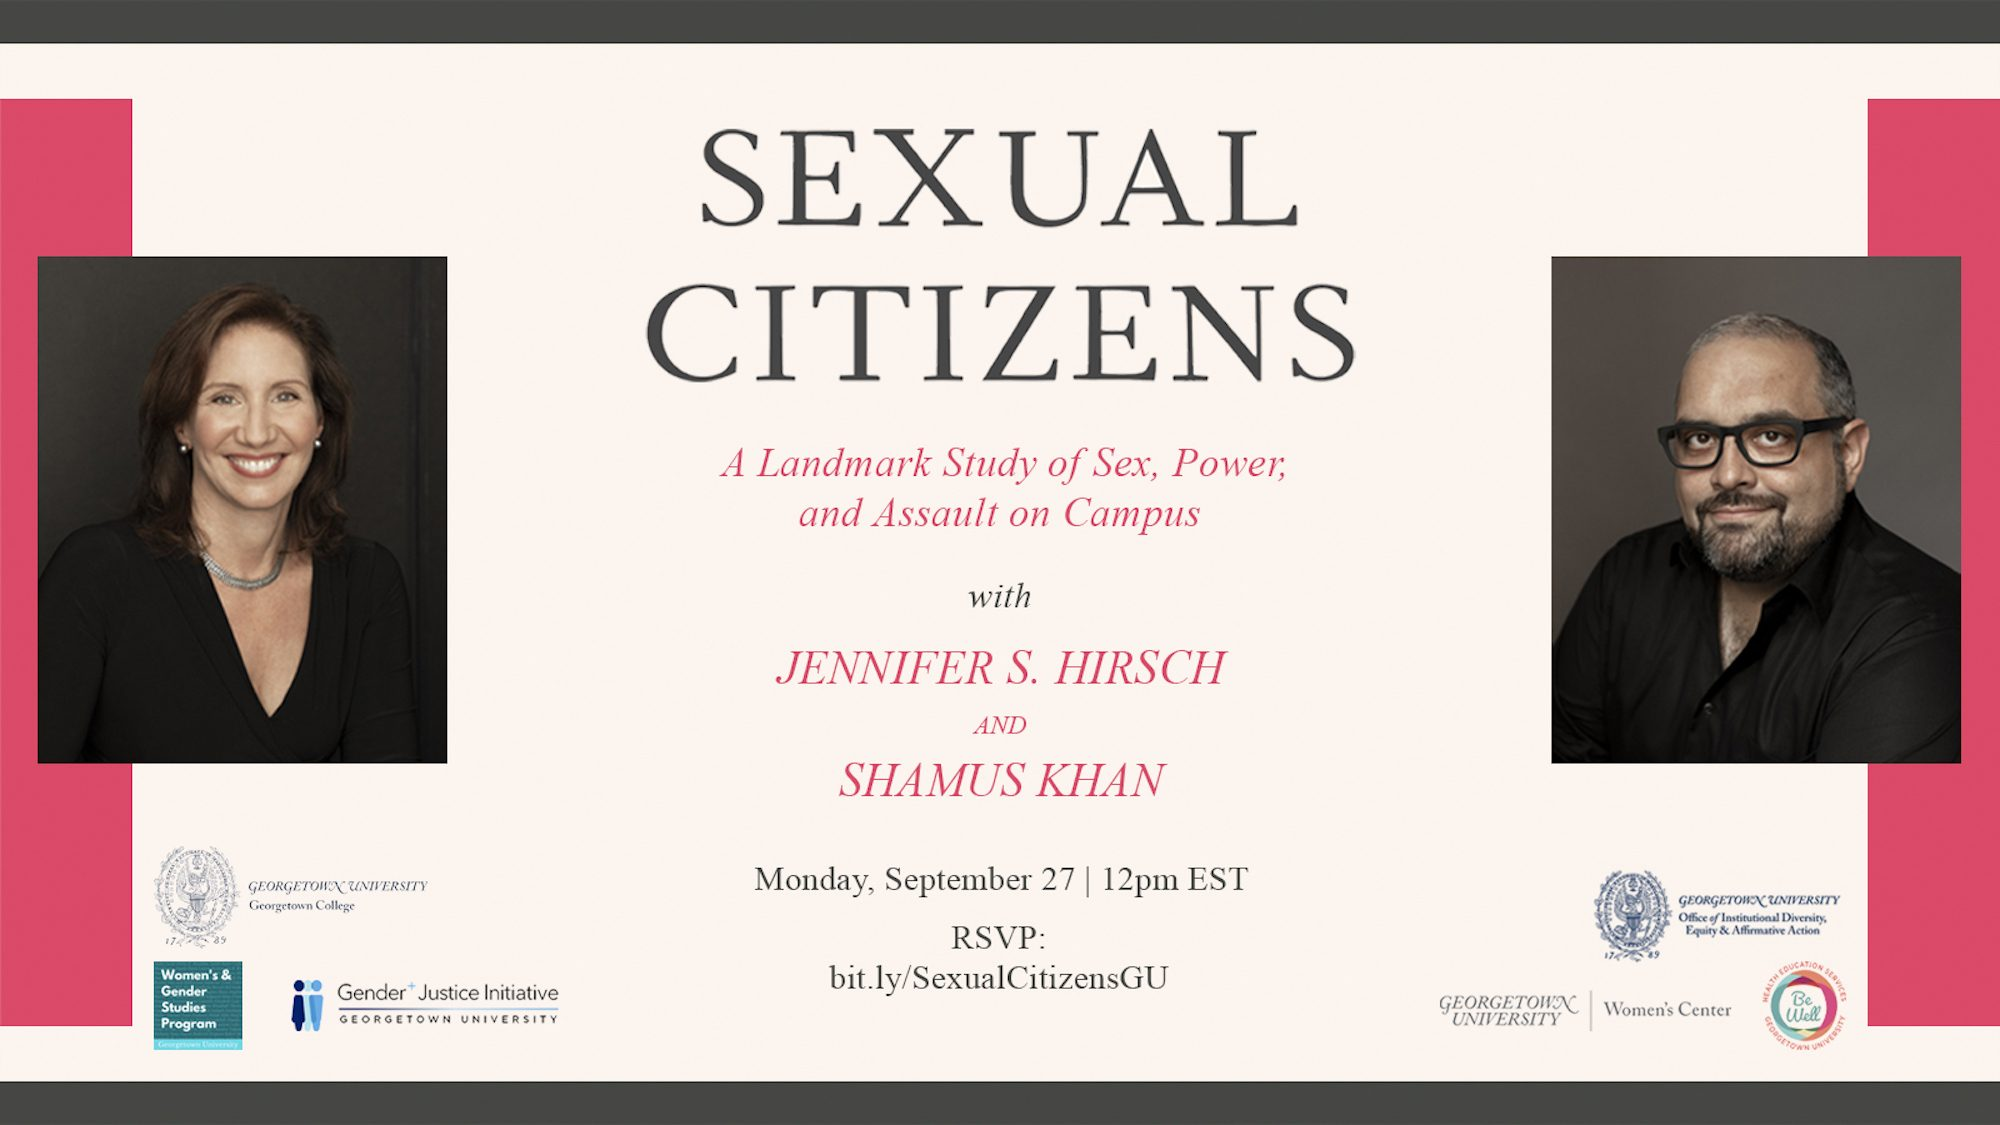 Sexual Citizens Flyer - Authors headshots and title center